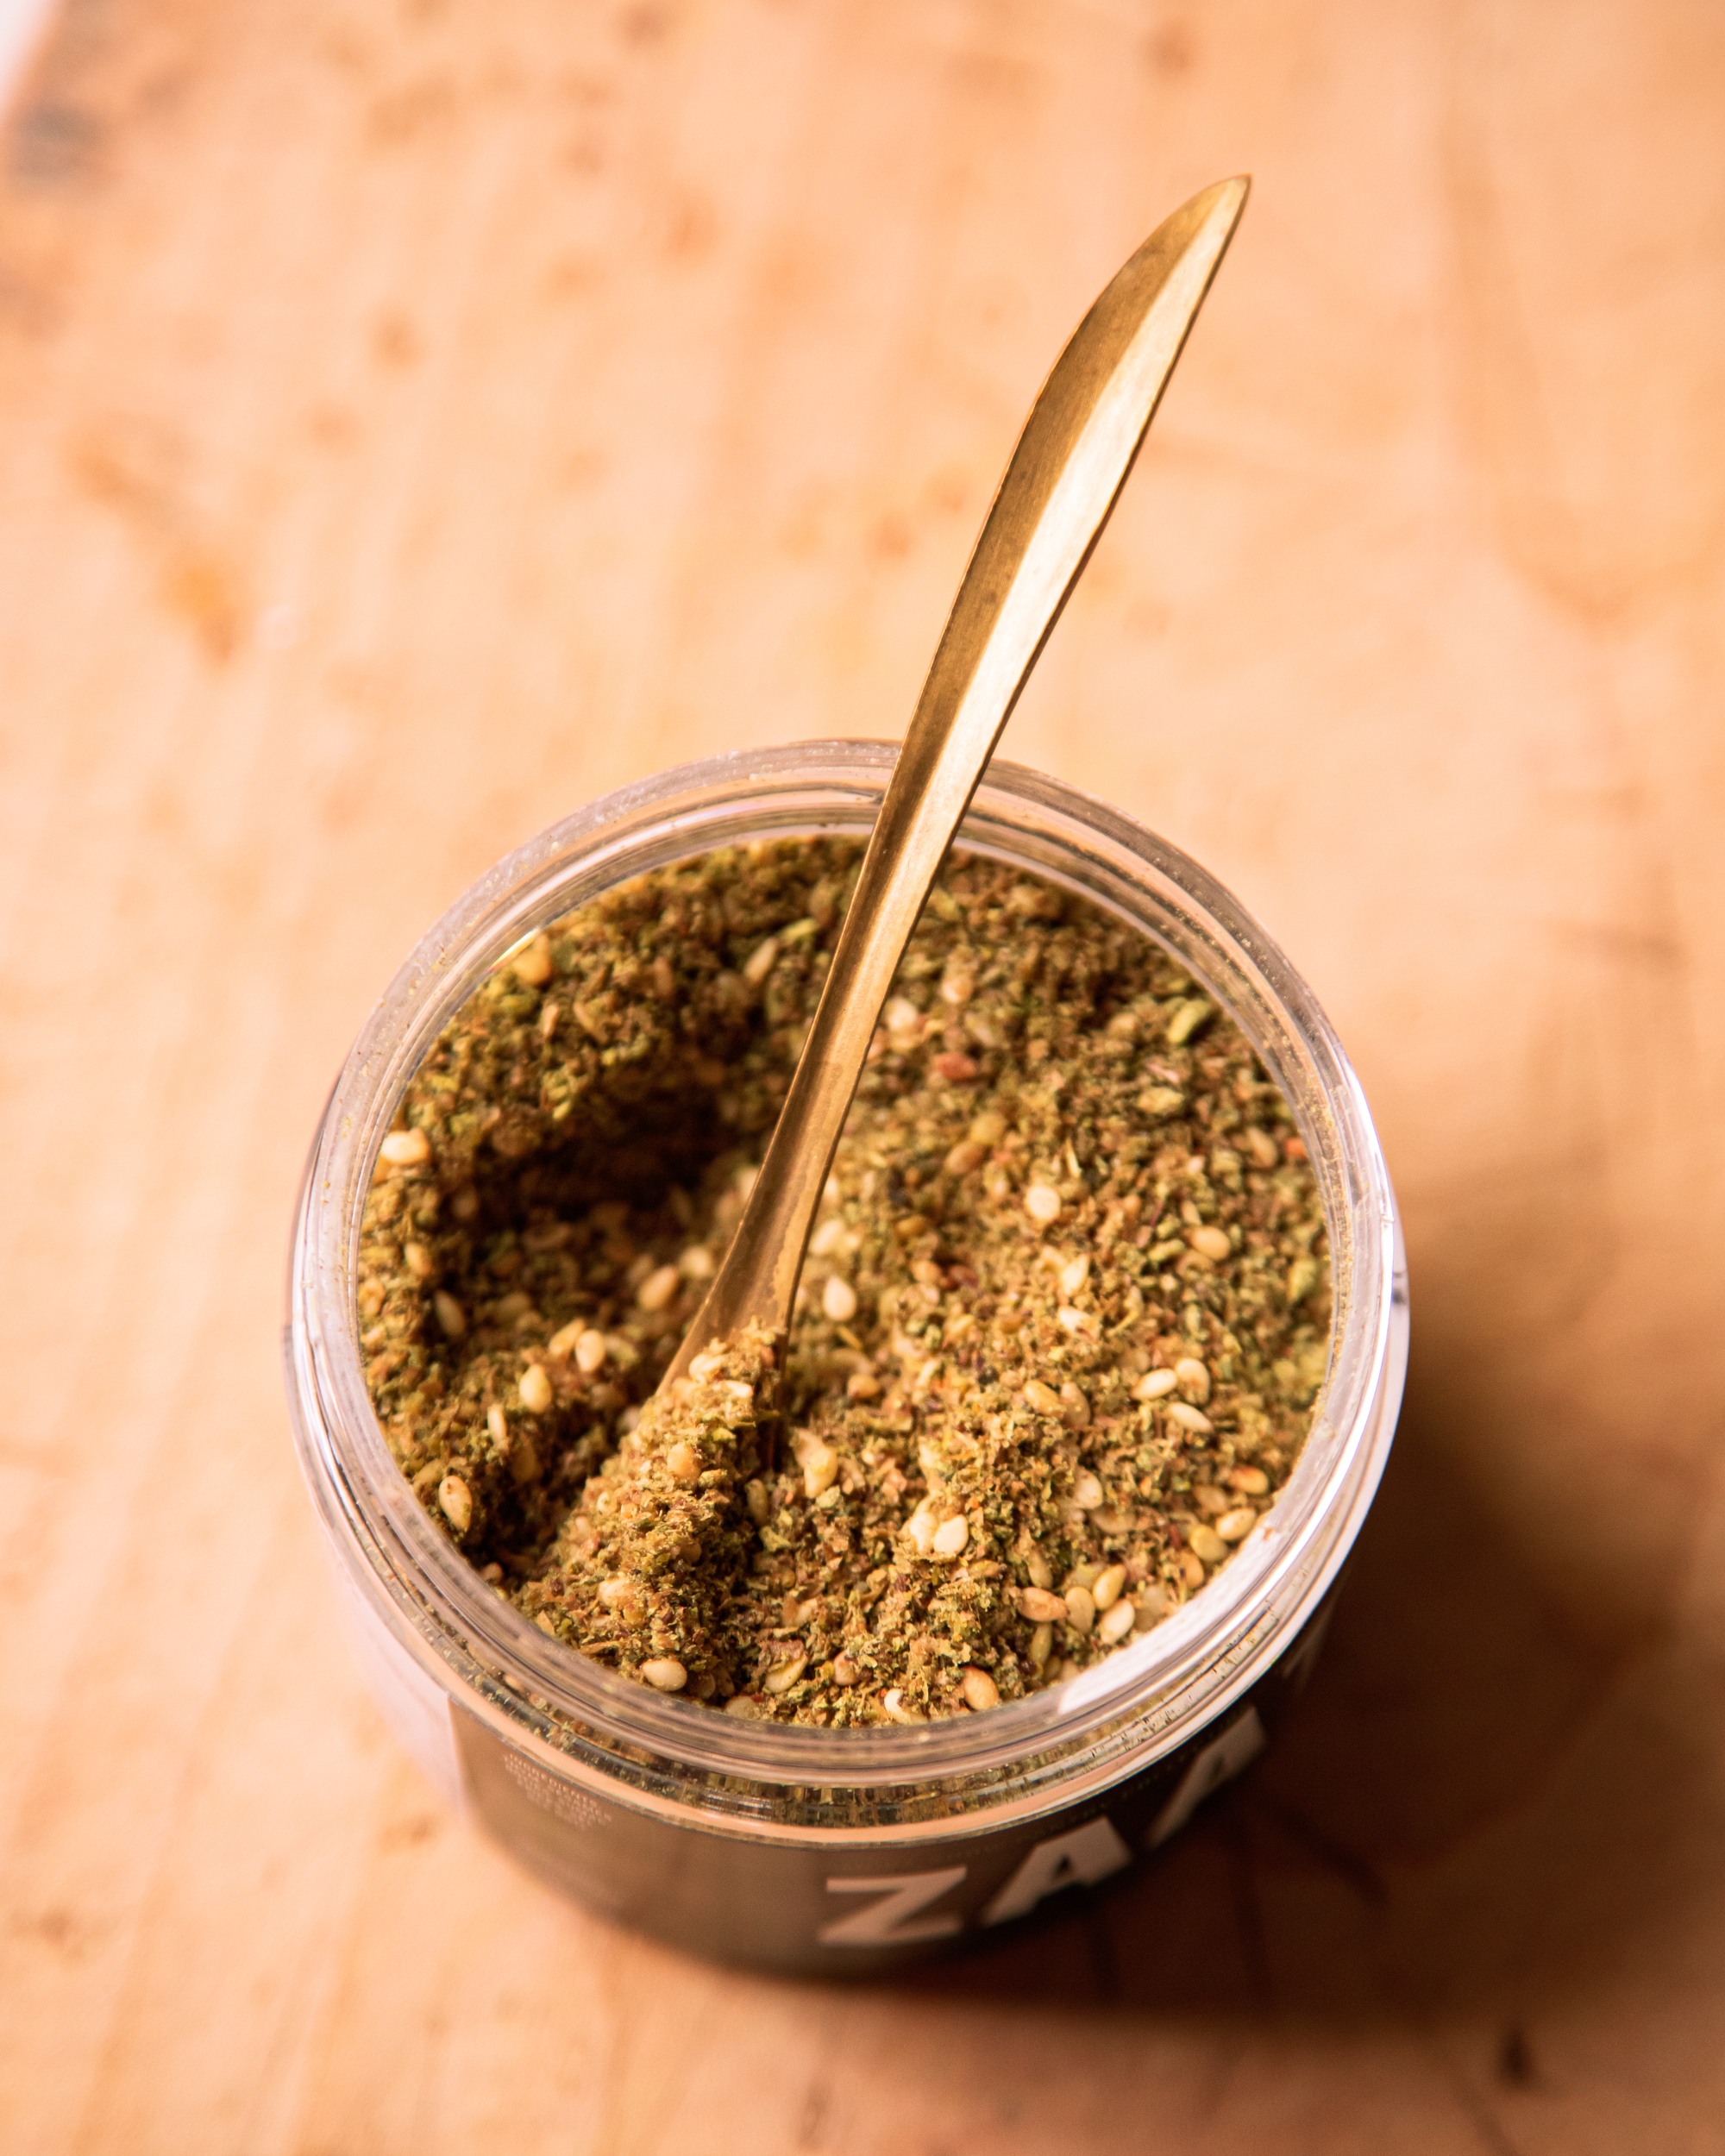 An up close shot of a jar of za'atar spice with a gold spoon sticking out.